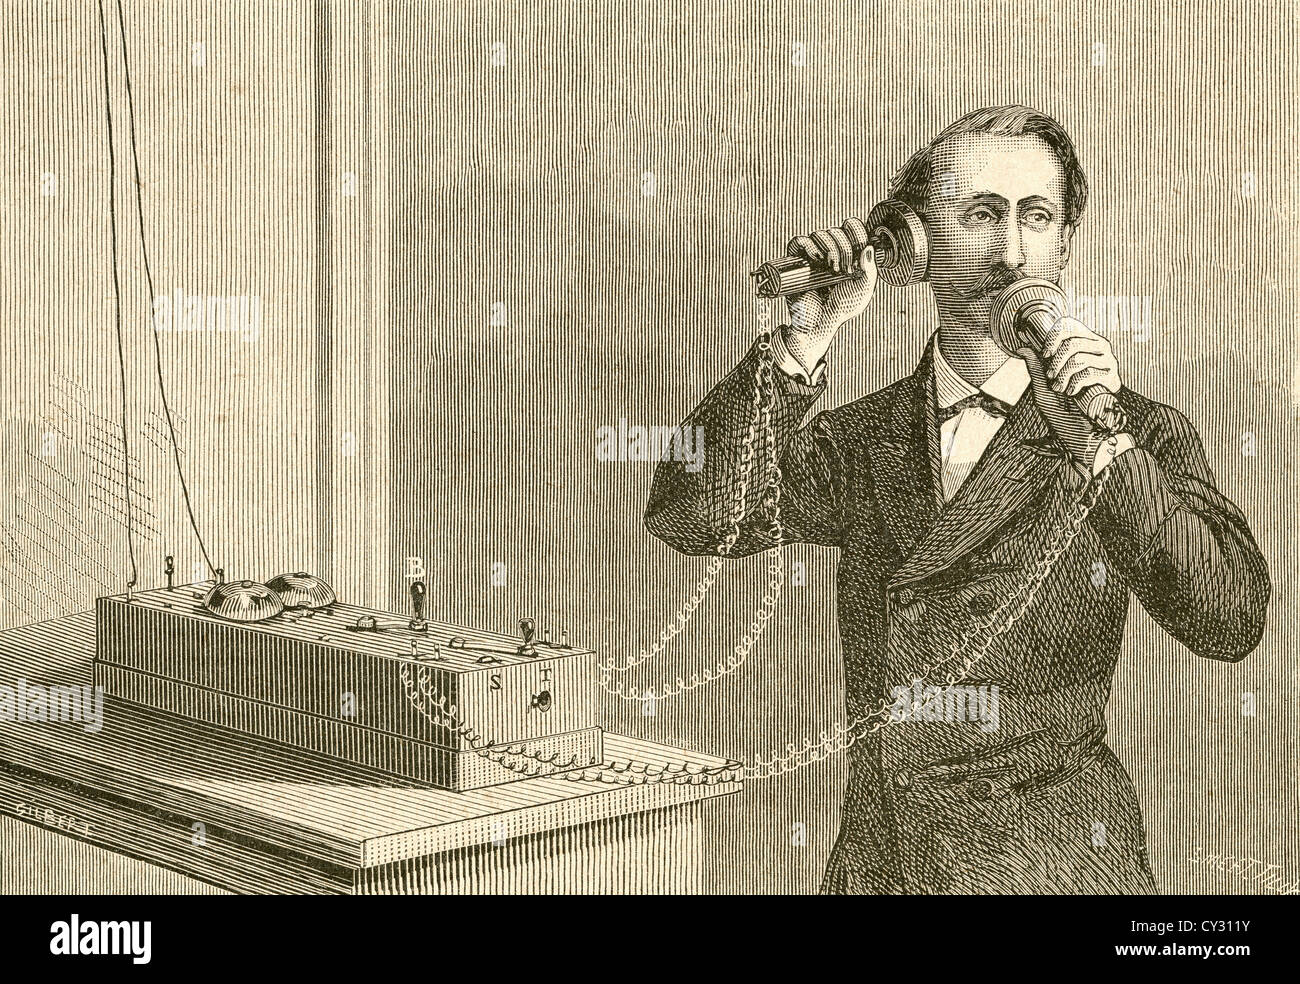 An early telephone.  LAte 19th century. - Stock Image